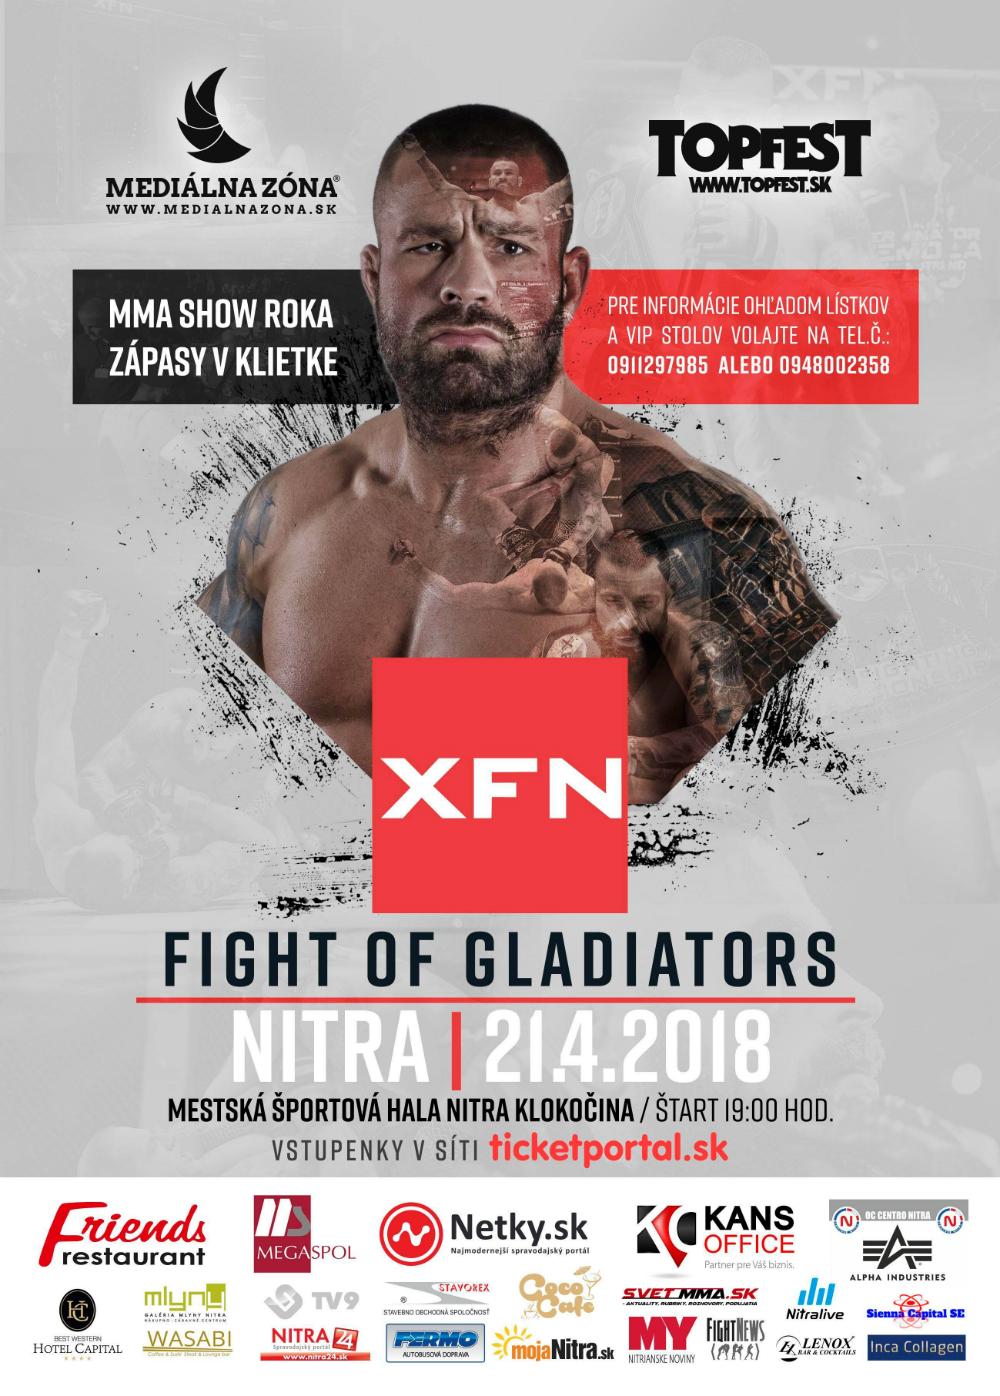 Fight of gladiatiors 2018 Nitra